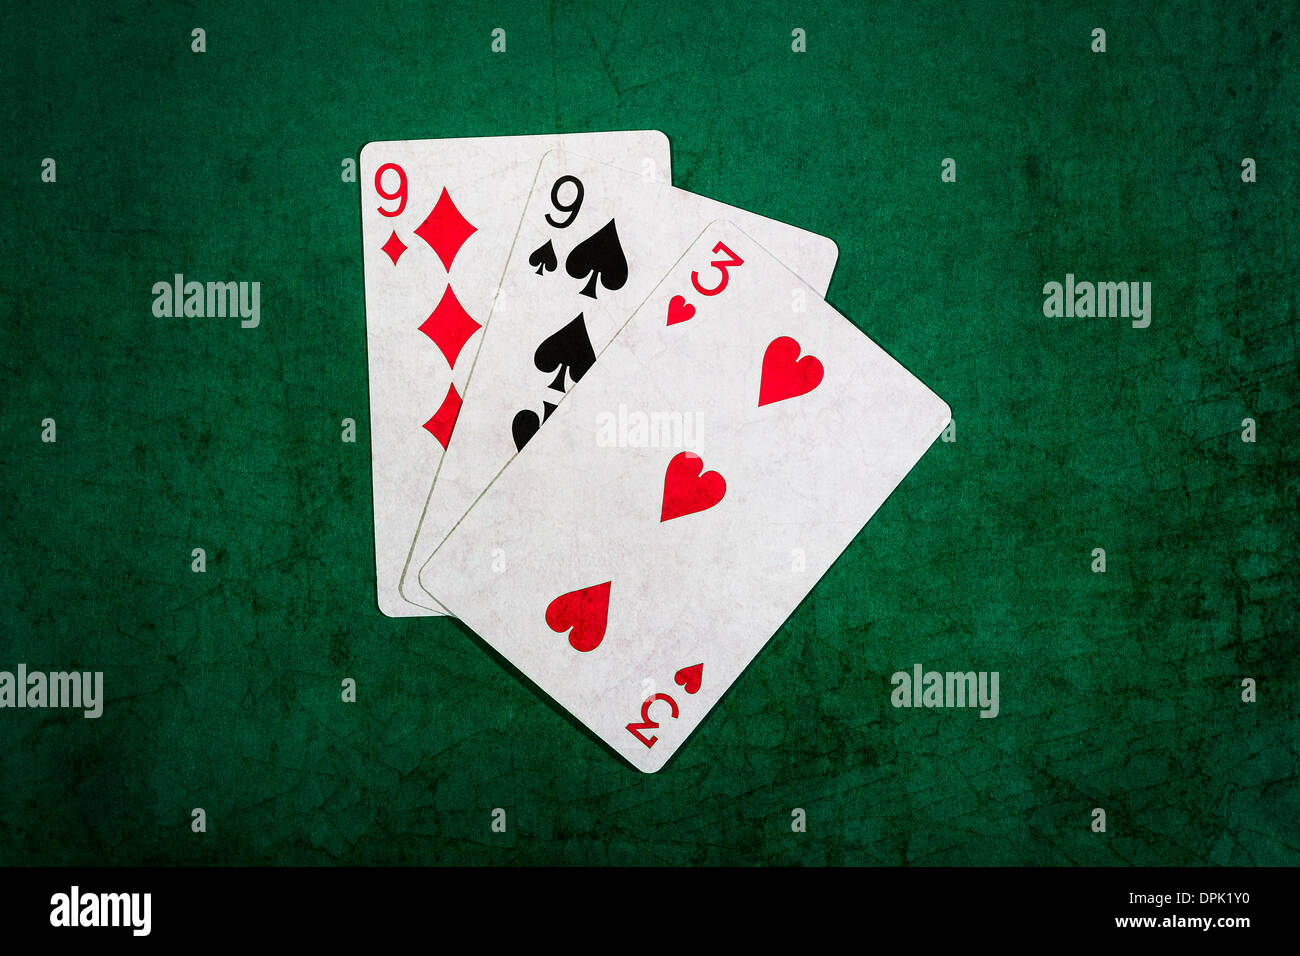 Twenty One 10. Closeup view of playing cards forming the blackjack combination of twenty one points - Stock Image